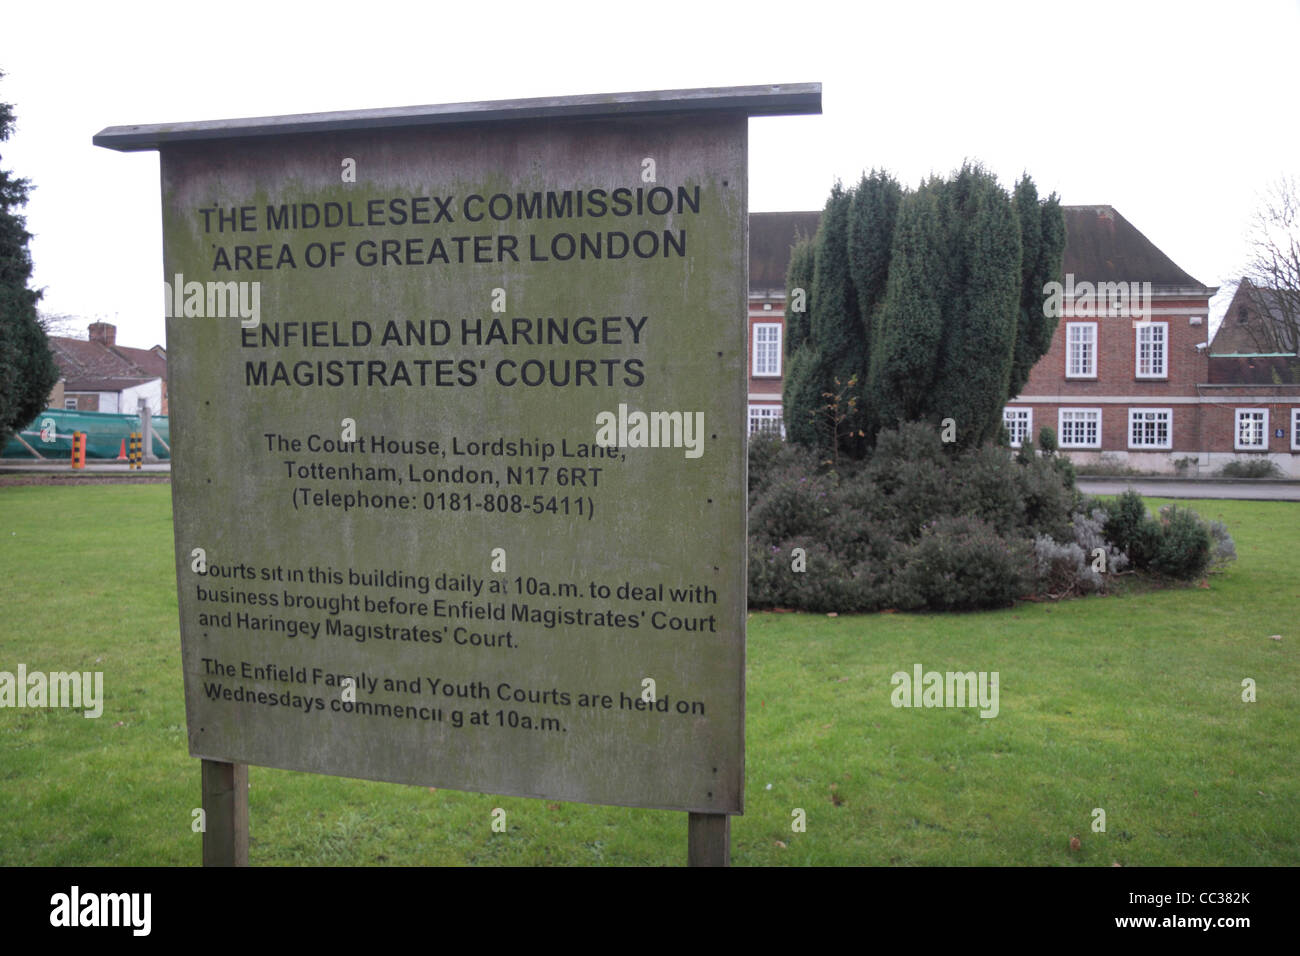 Sign outside Enfield and Haringey Magistrates' Courts in North London, UK. - Stock Image